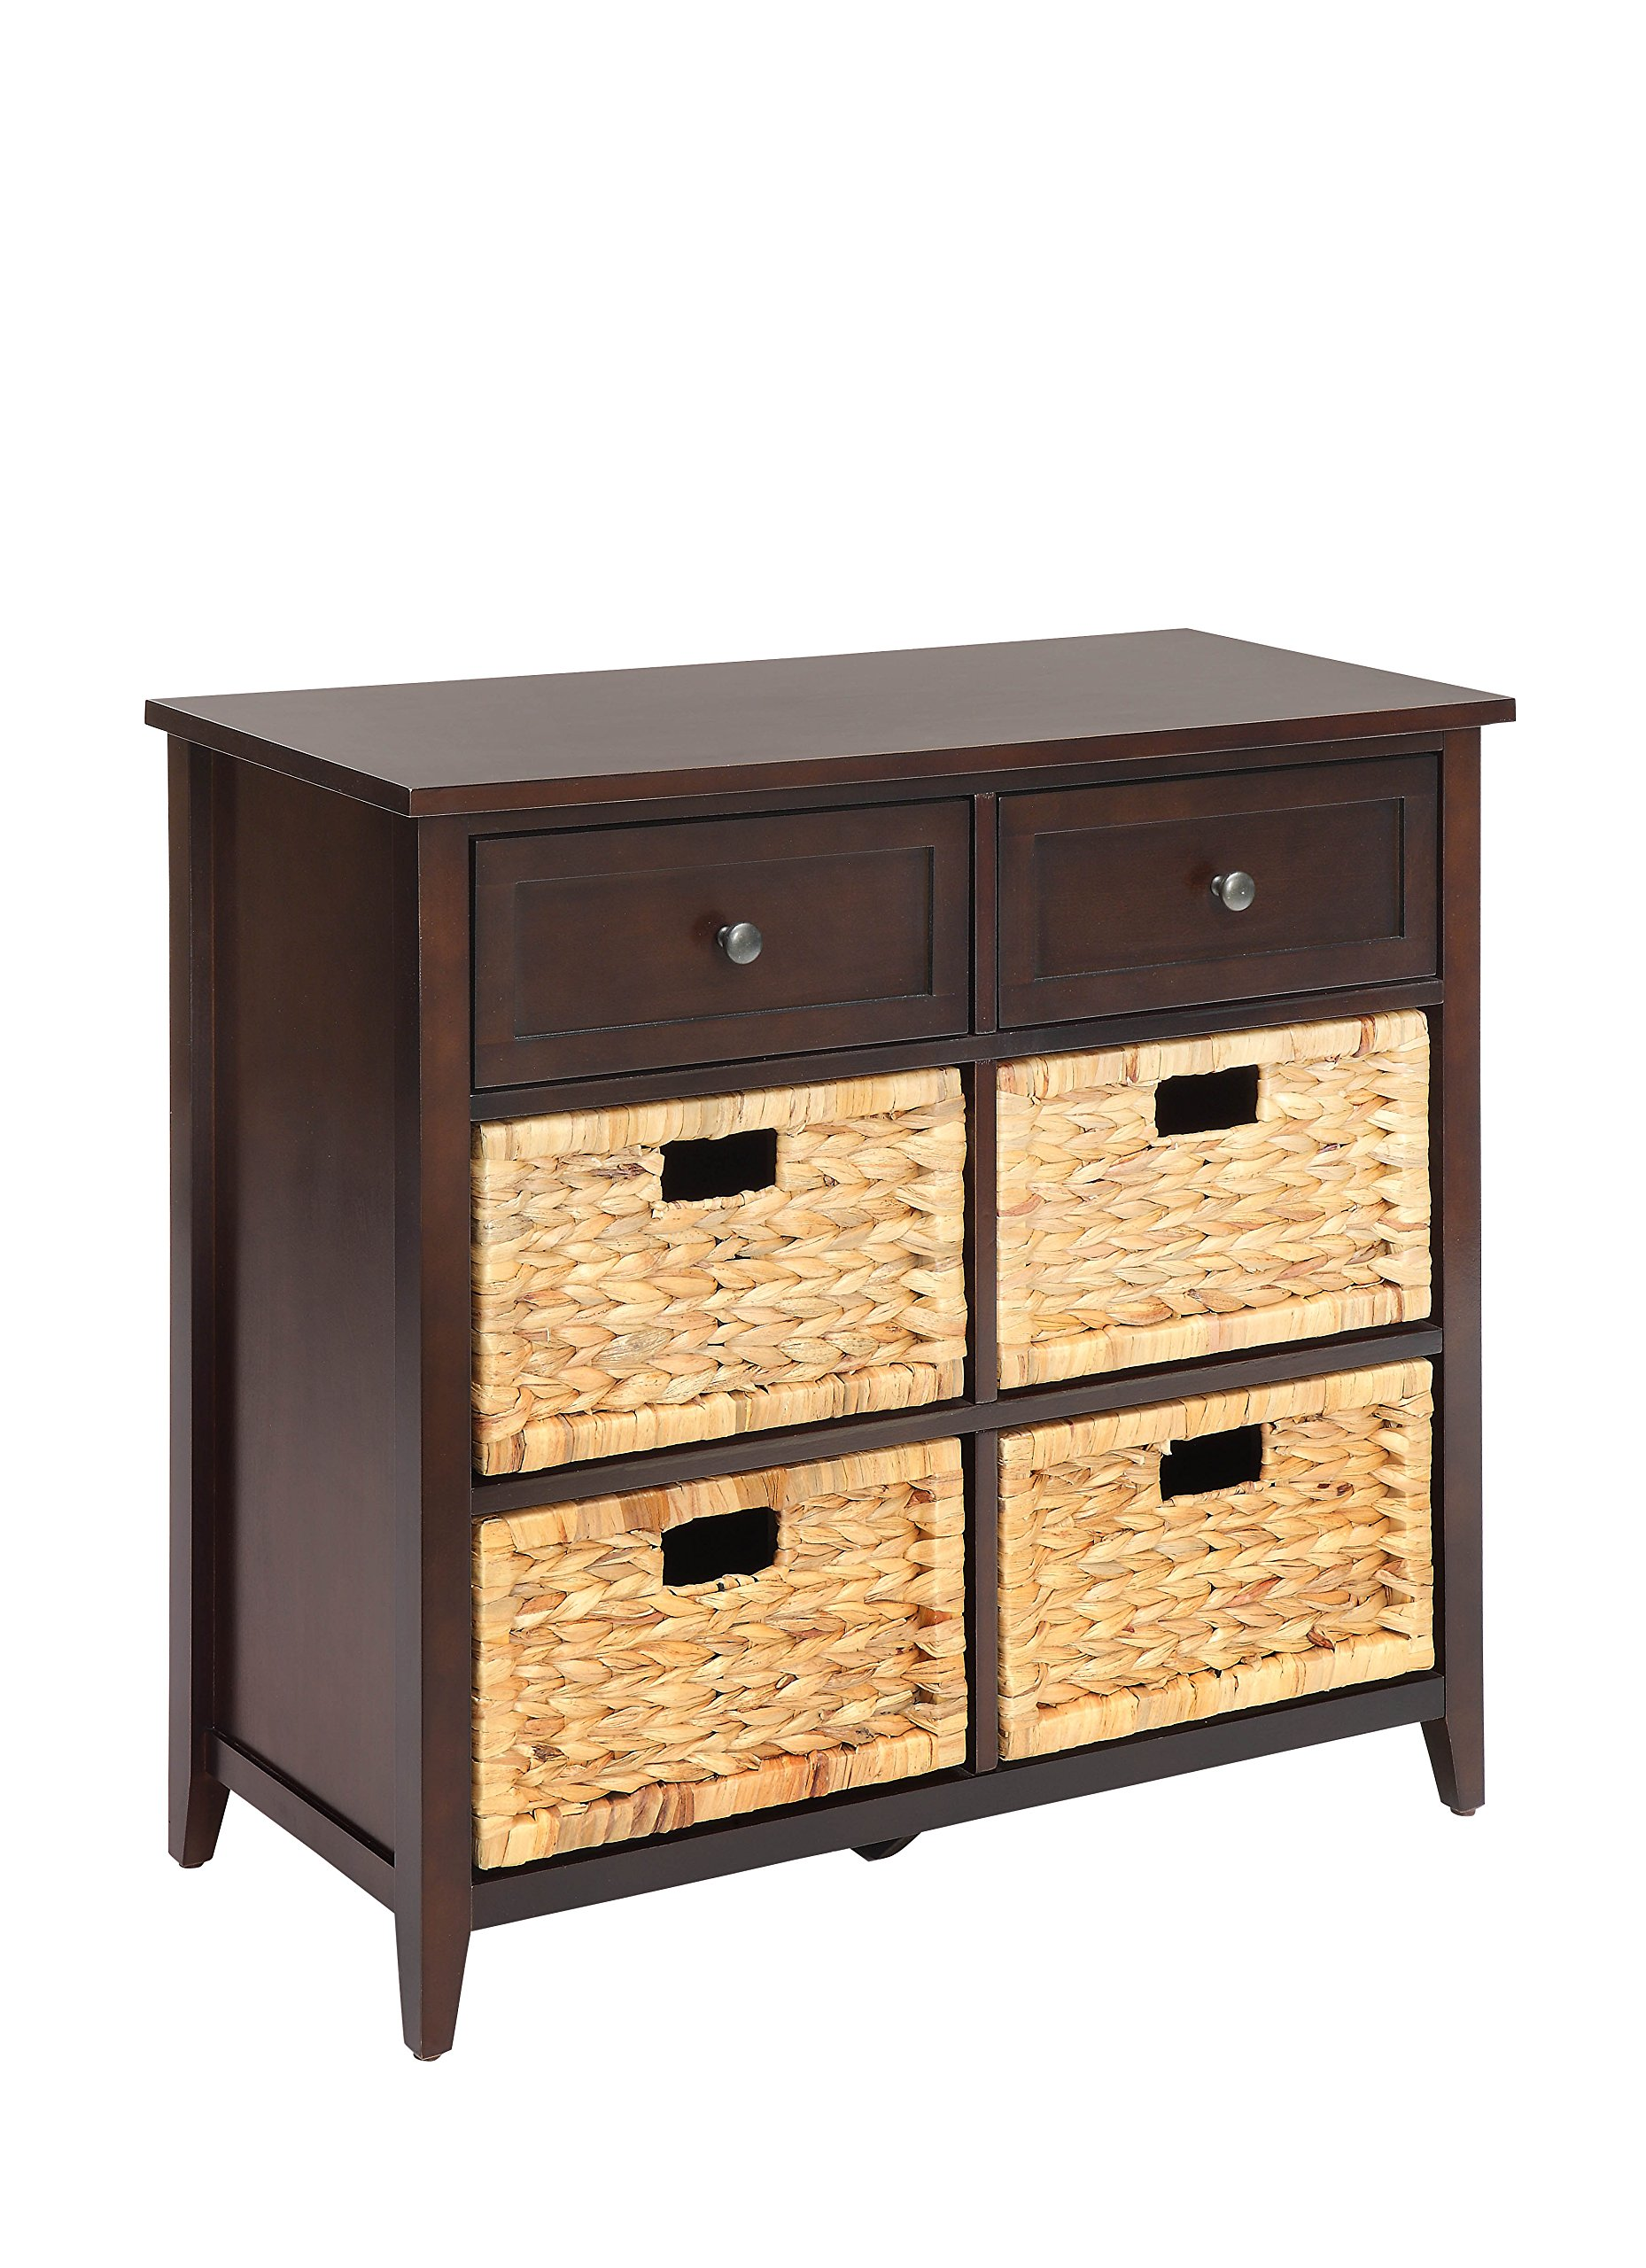 ACME Flavius Espresso Accent Chest - Rectangular Chest The product contains 6 drawers Wooden frame - dressers-bedroom-furniture, bedroom-furniture, bedroom - 81T%2BF78H6qL -